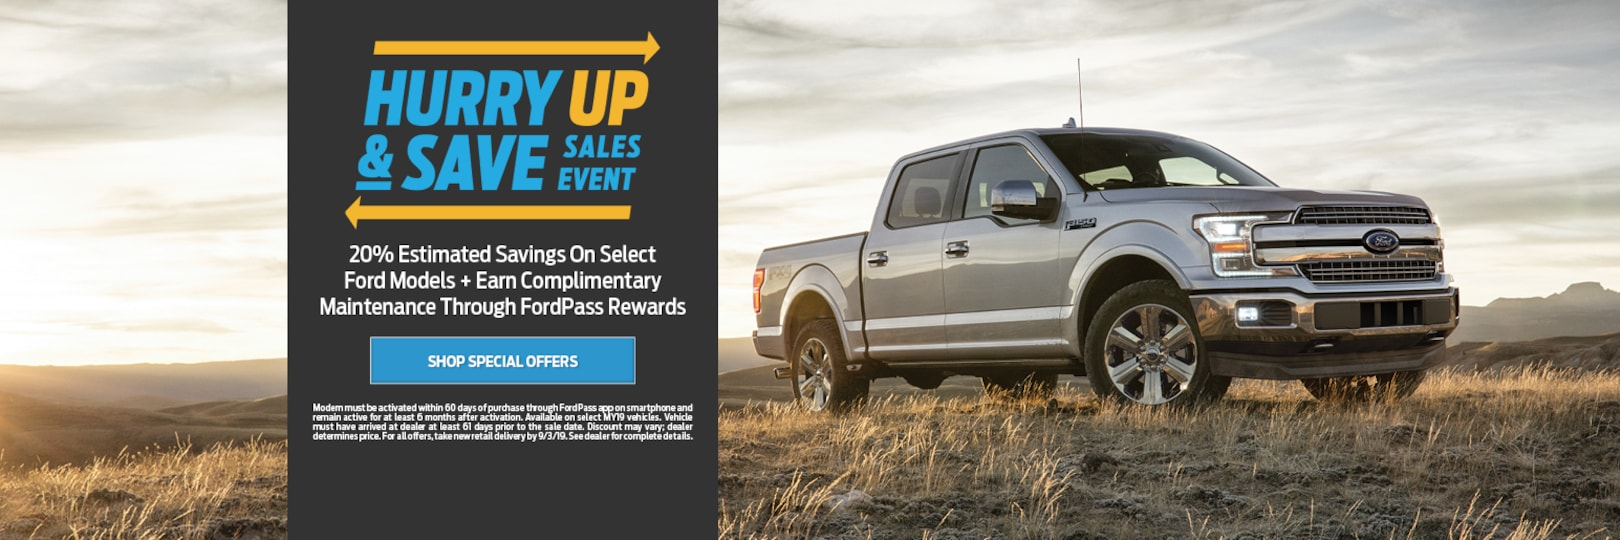 Colonial Ford Danbury Ct >> New 2019 & 2020 Ford Dealer | Colonial Ford in Danbury, CT